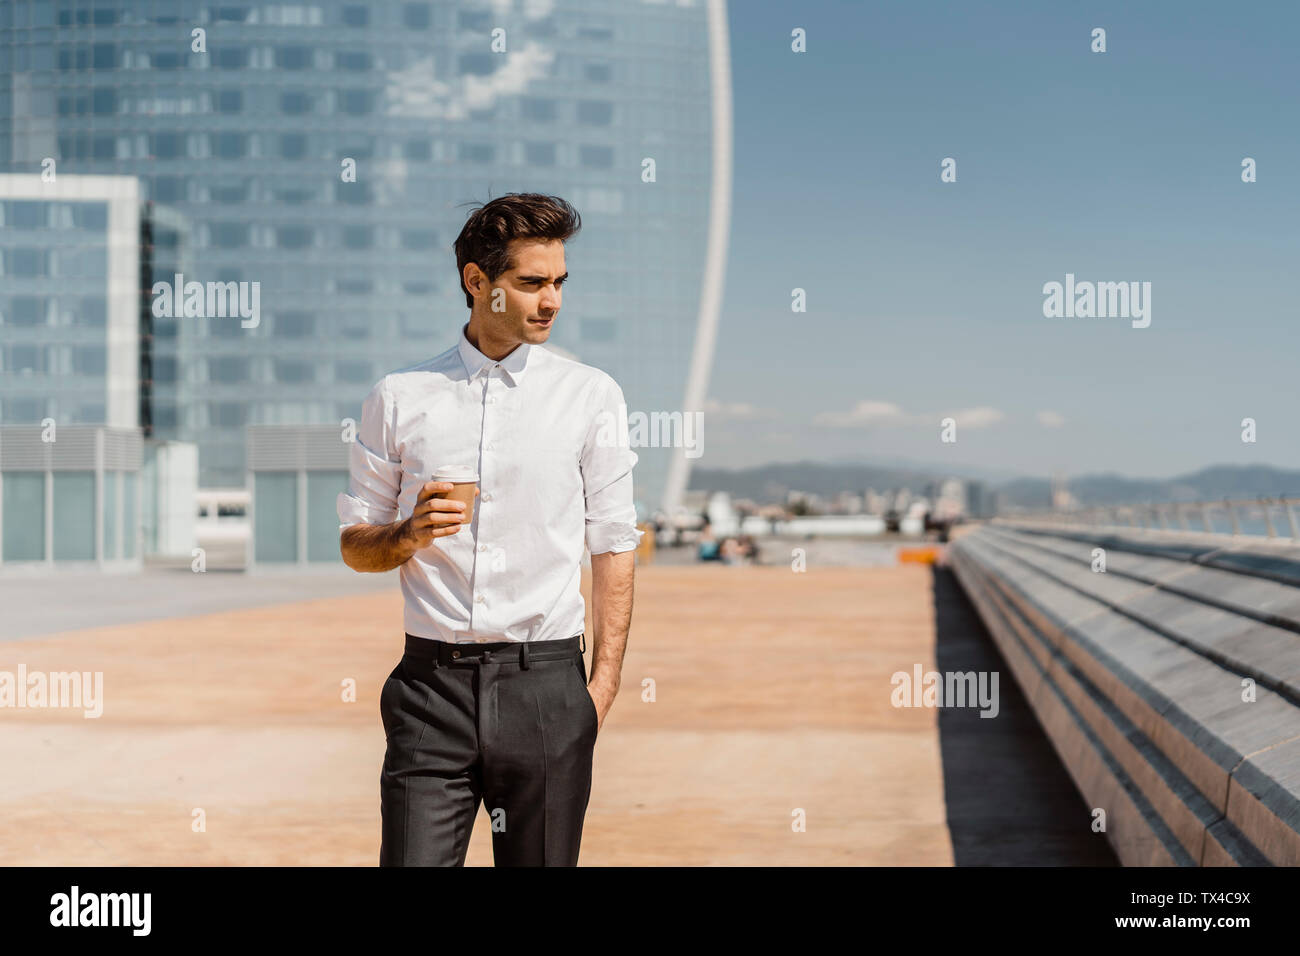 Businessman with takeaway coffee in the city - Stock Image